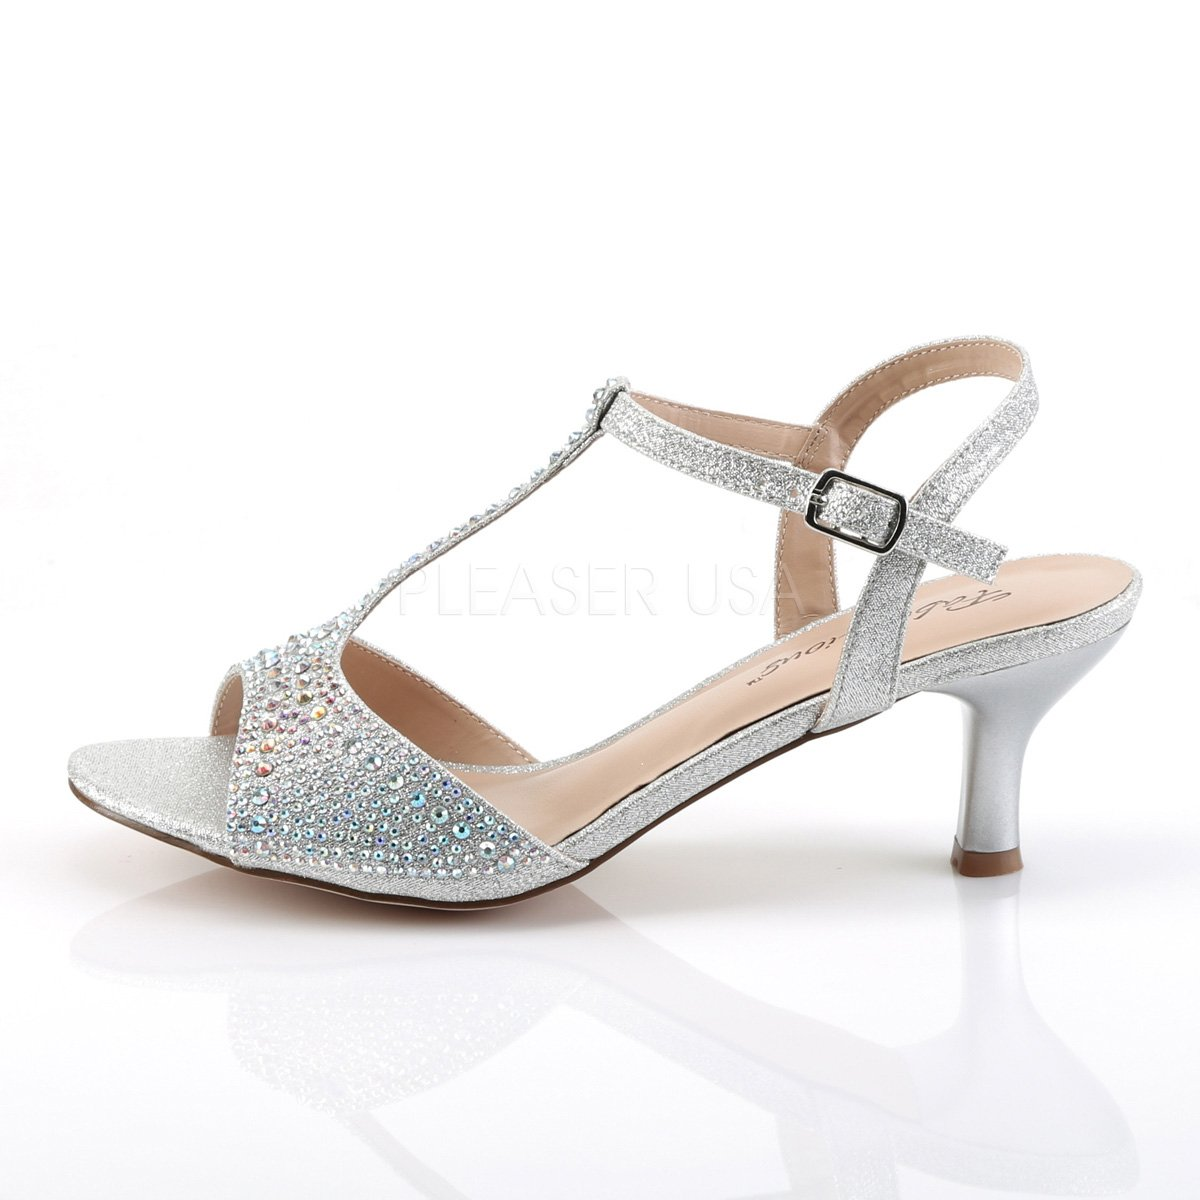 Fabulicious Audrey 05 Silver Shimmering Fabric Shoes T